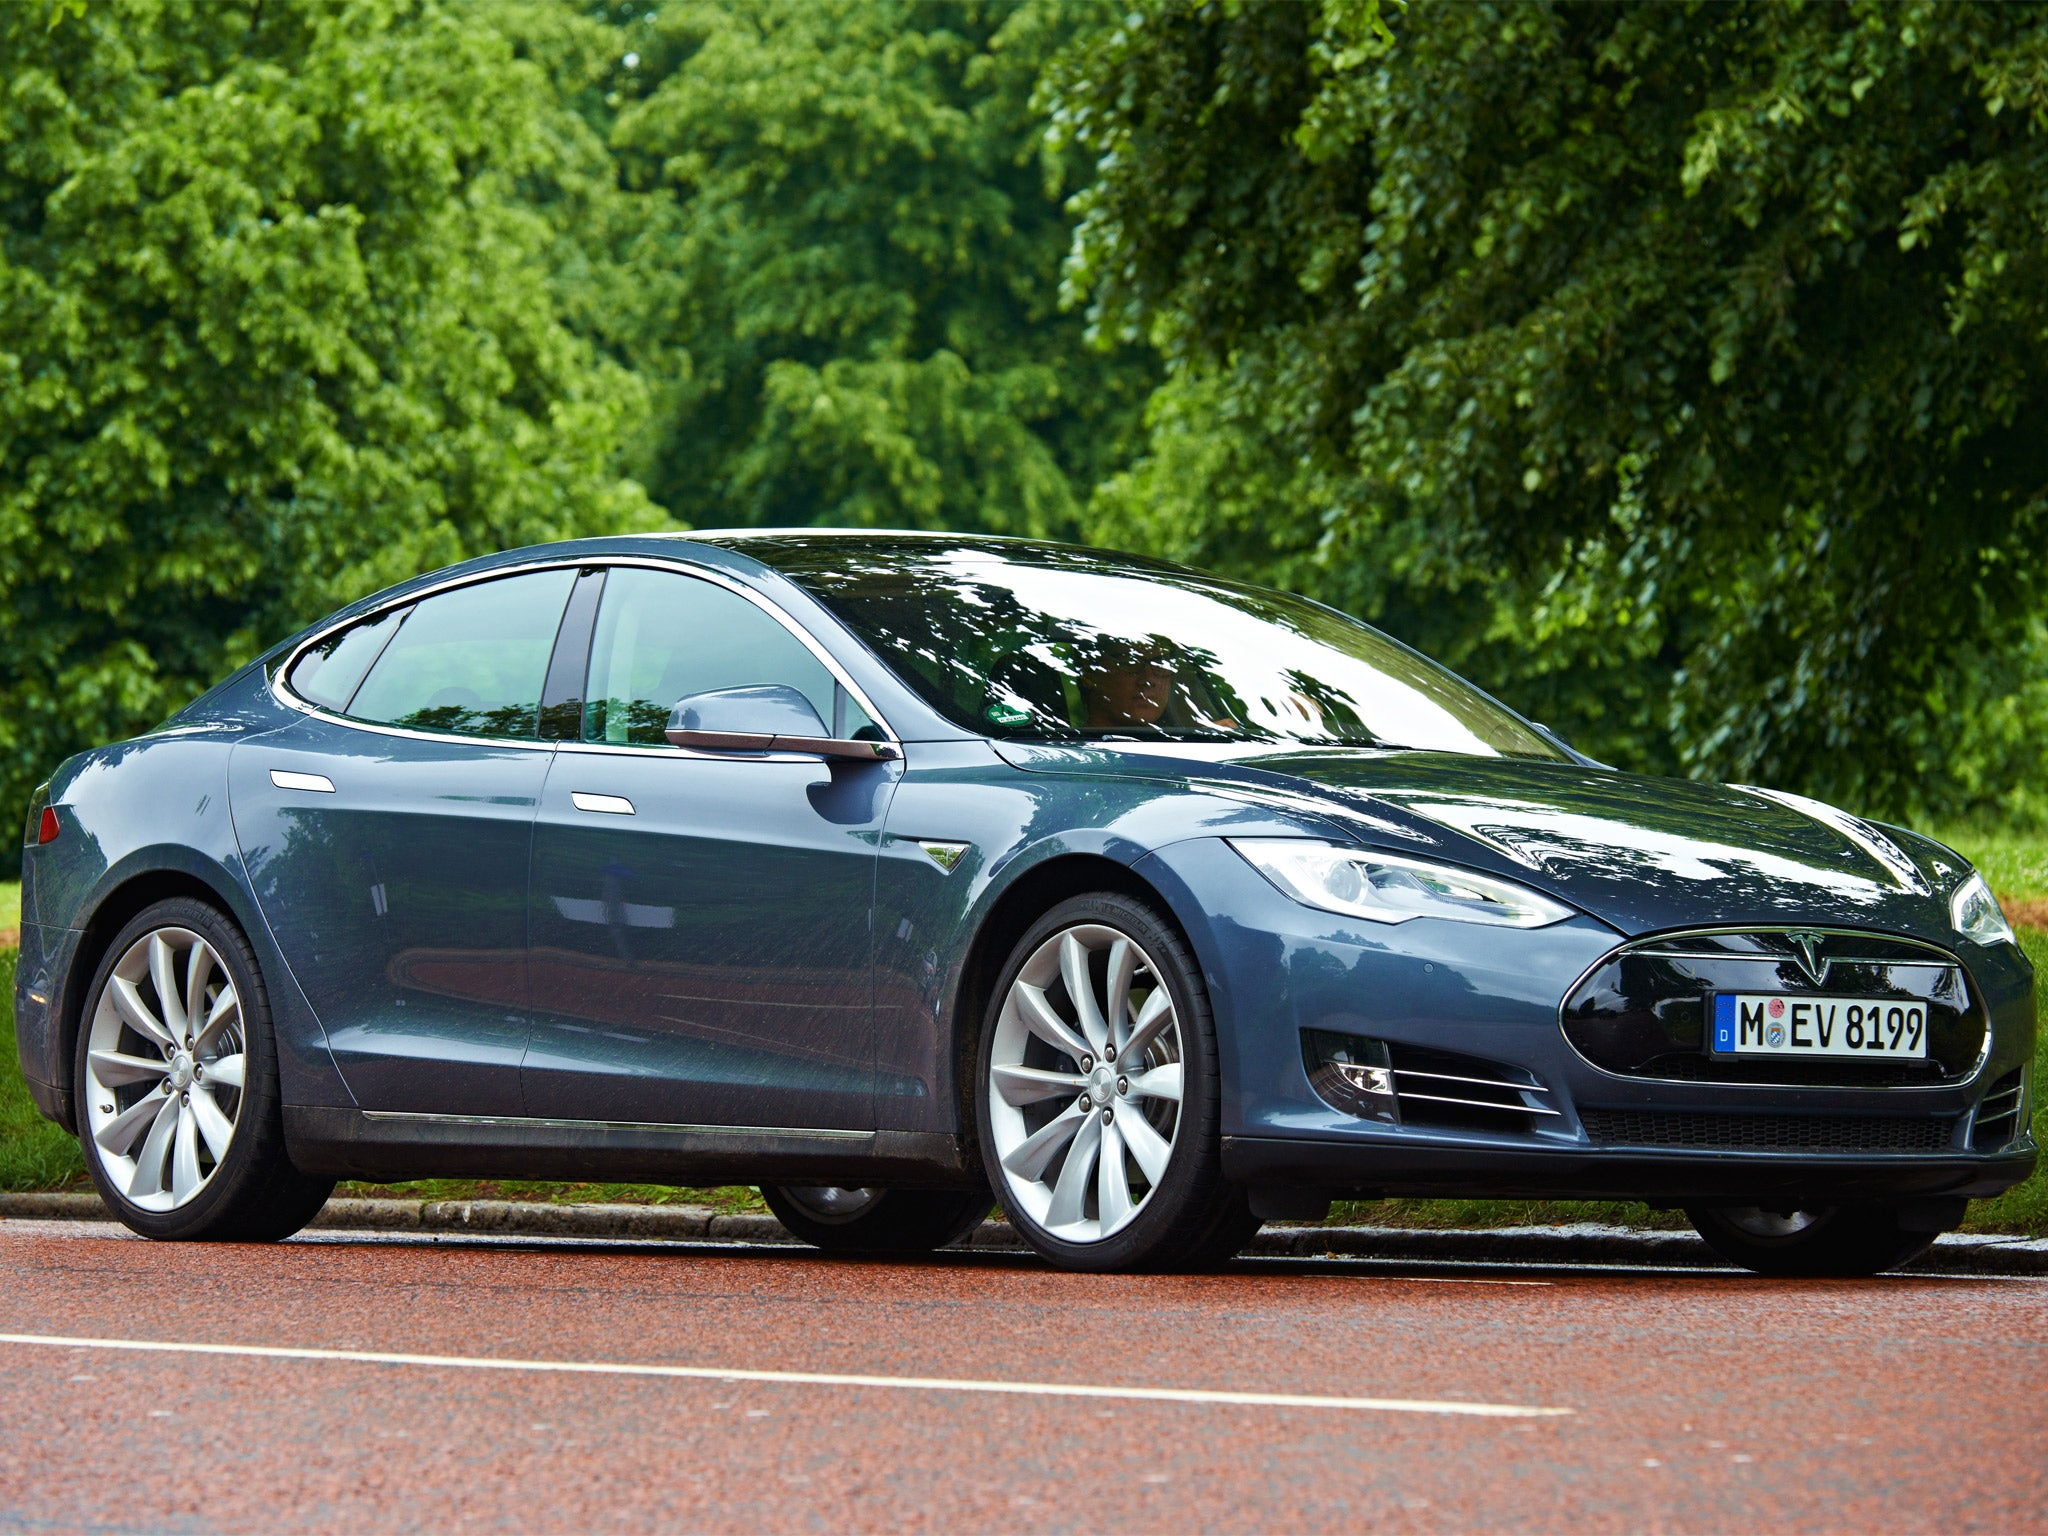 tesla model s p85 motoring review this much hyped car is a mean green driving machine the. Black Bedroom Furniture Sets. Home Design Ideas